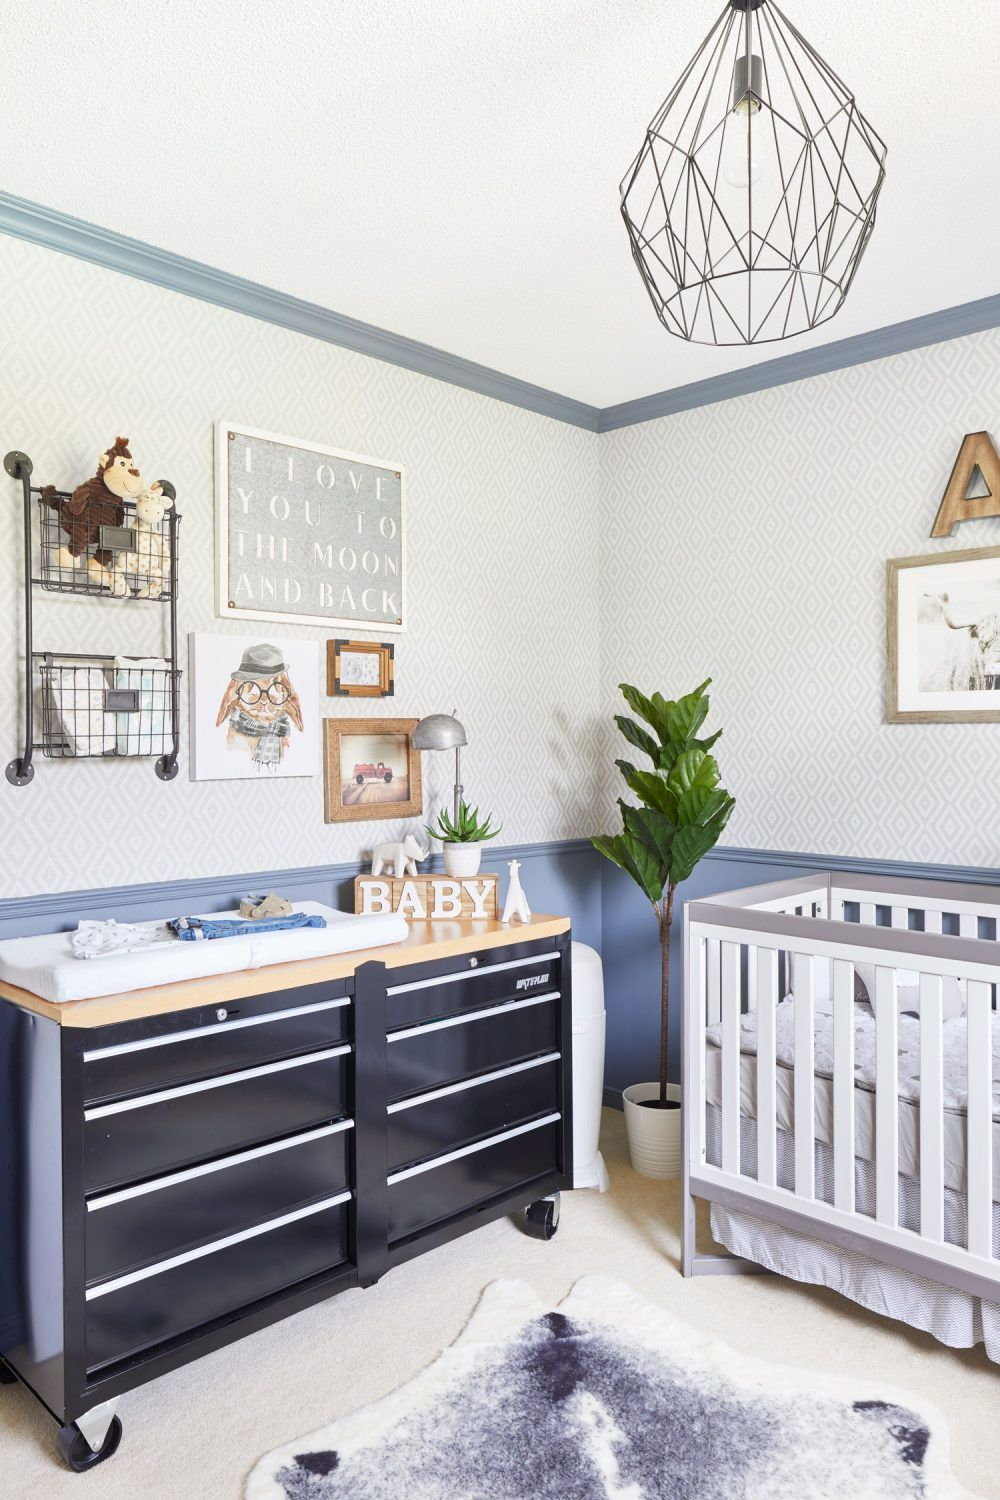 Unique Baby Boy Nursery Ideas: A Baby Boy's Nursery With The Most Unique Change Table You